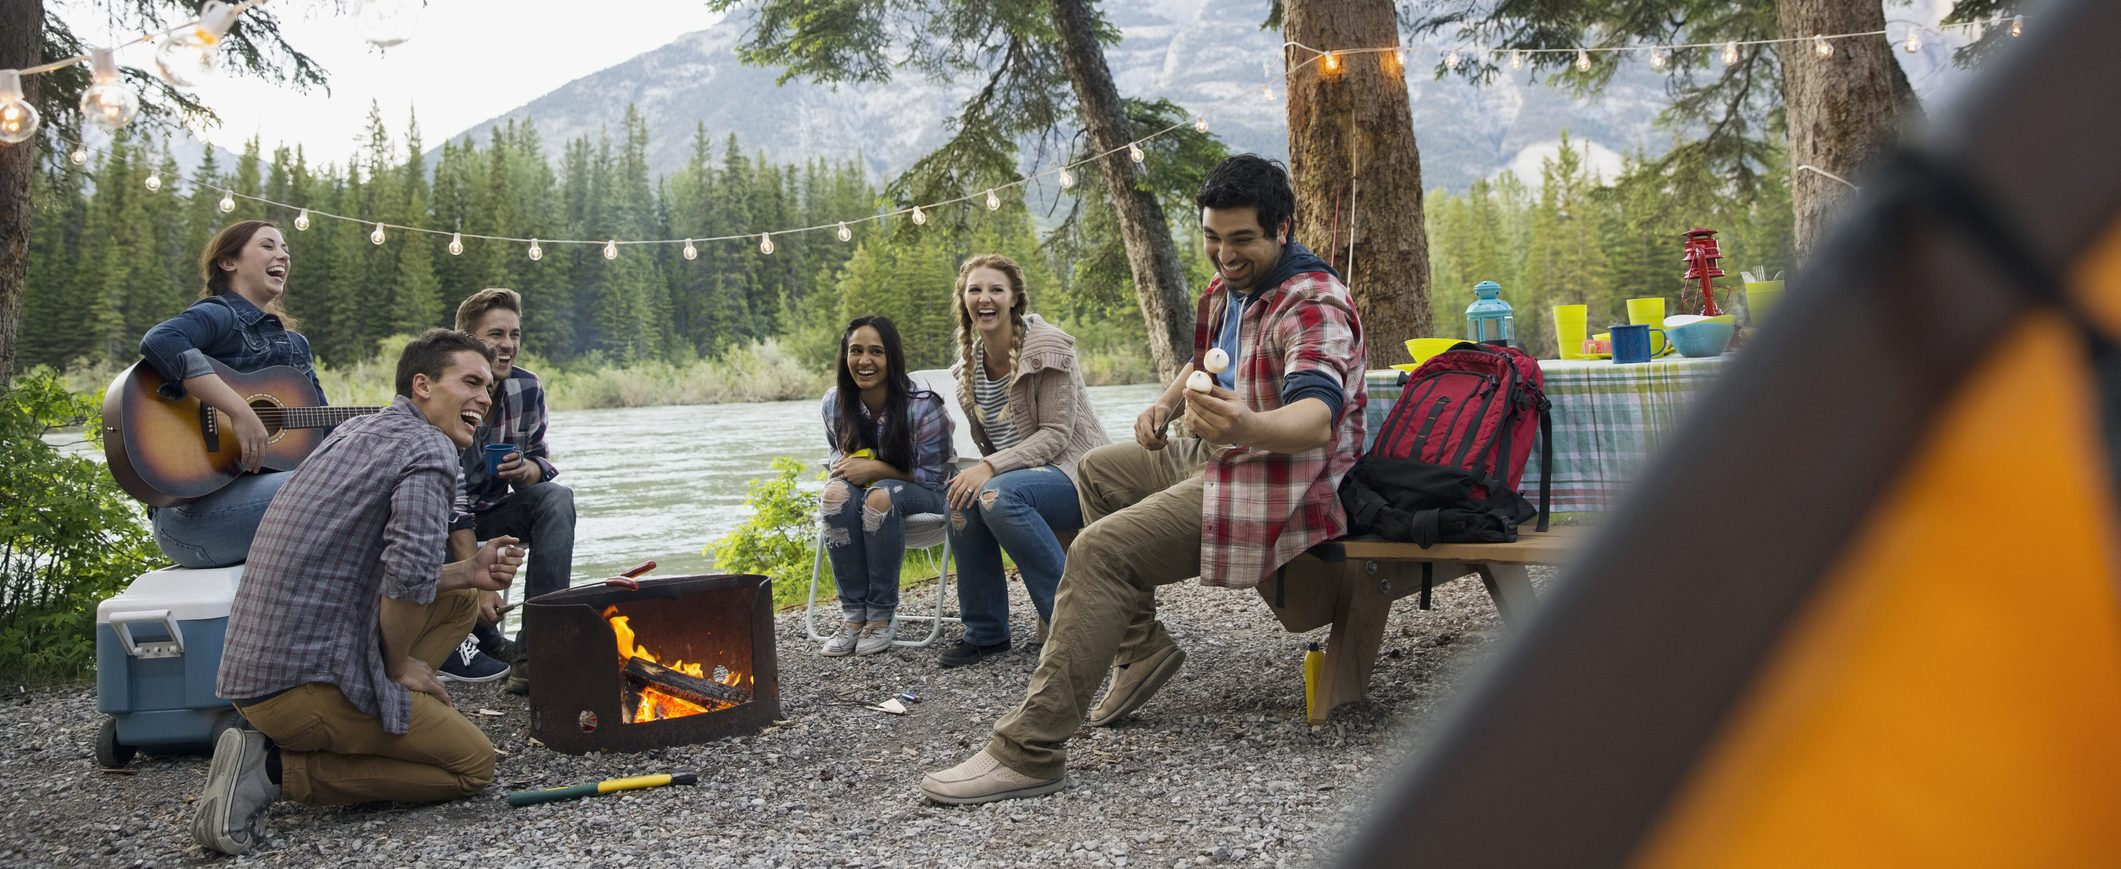 A quick camping getaway is a great way to save money on weekend trips